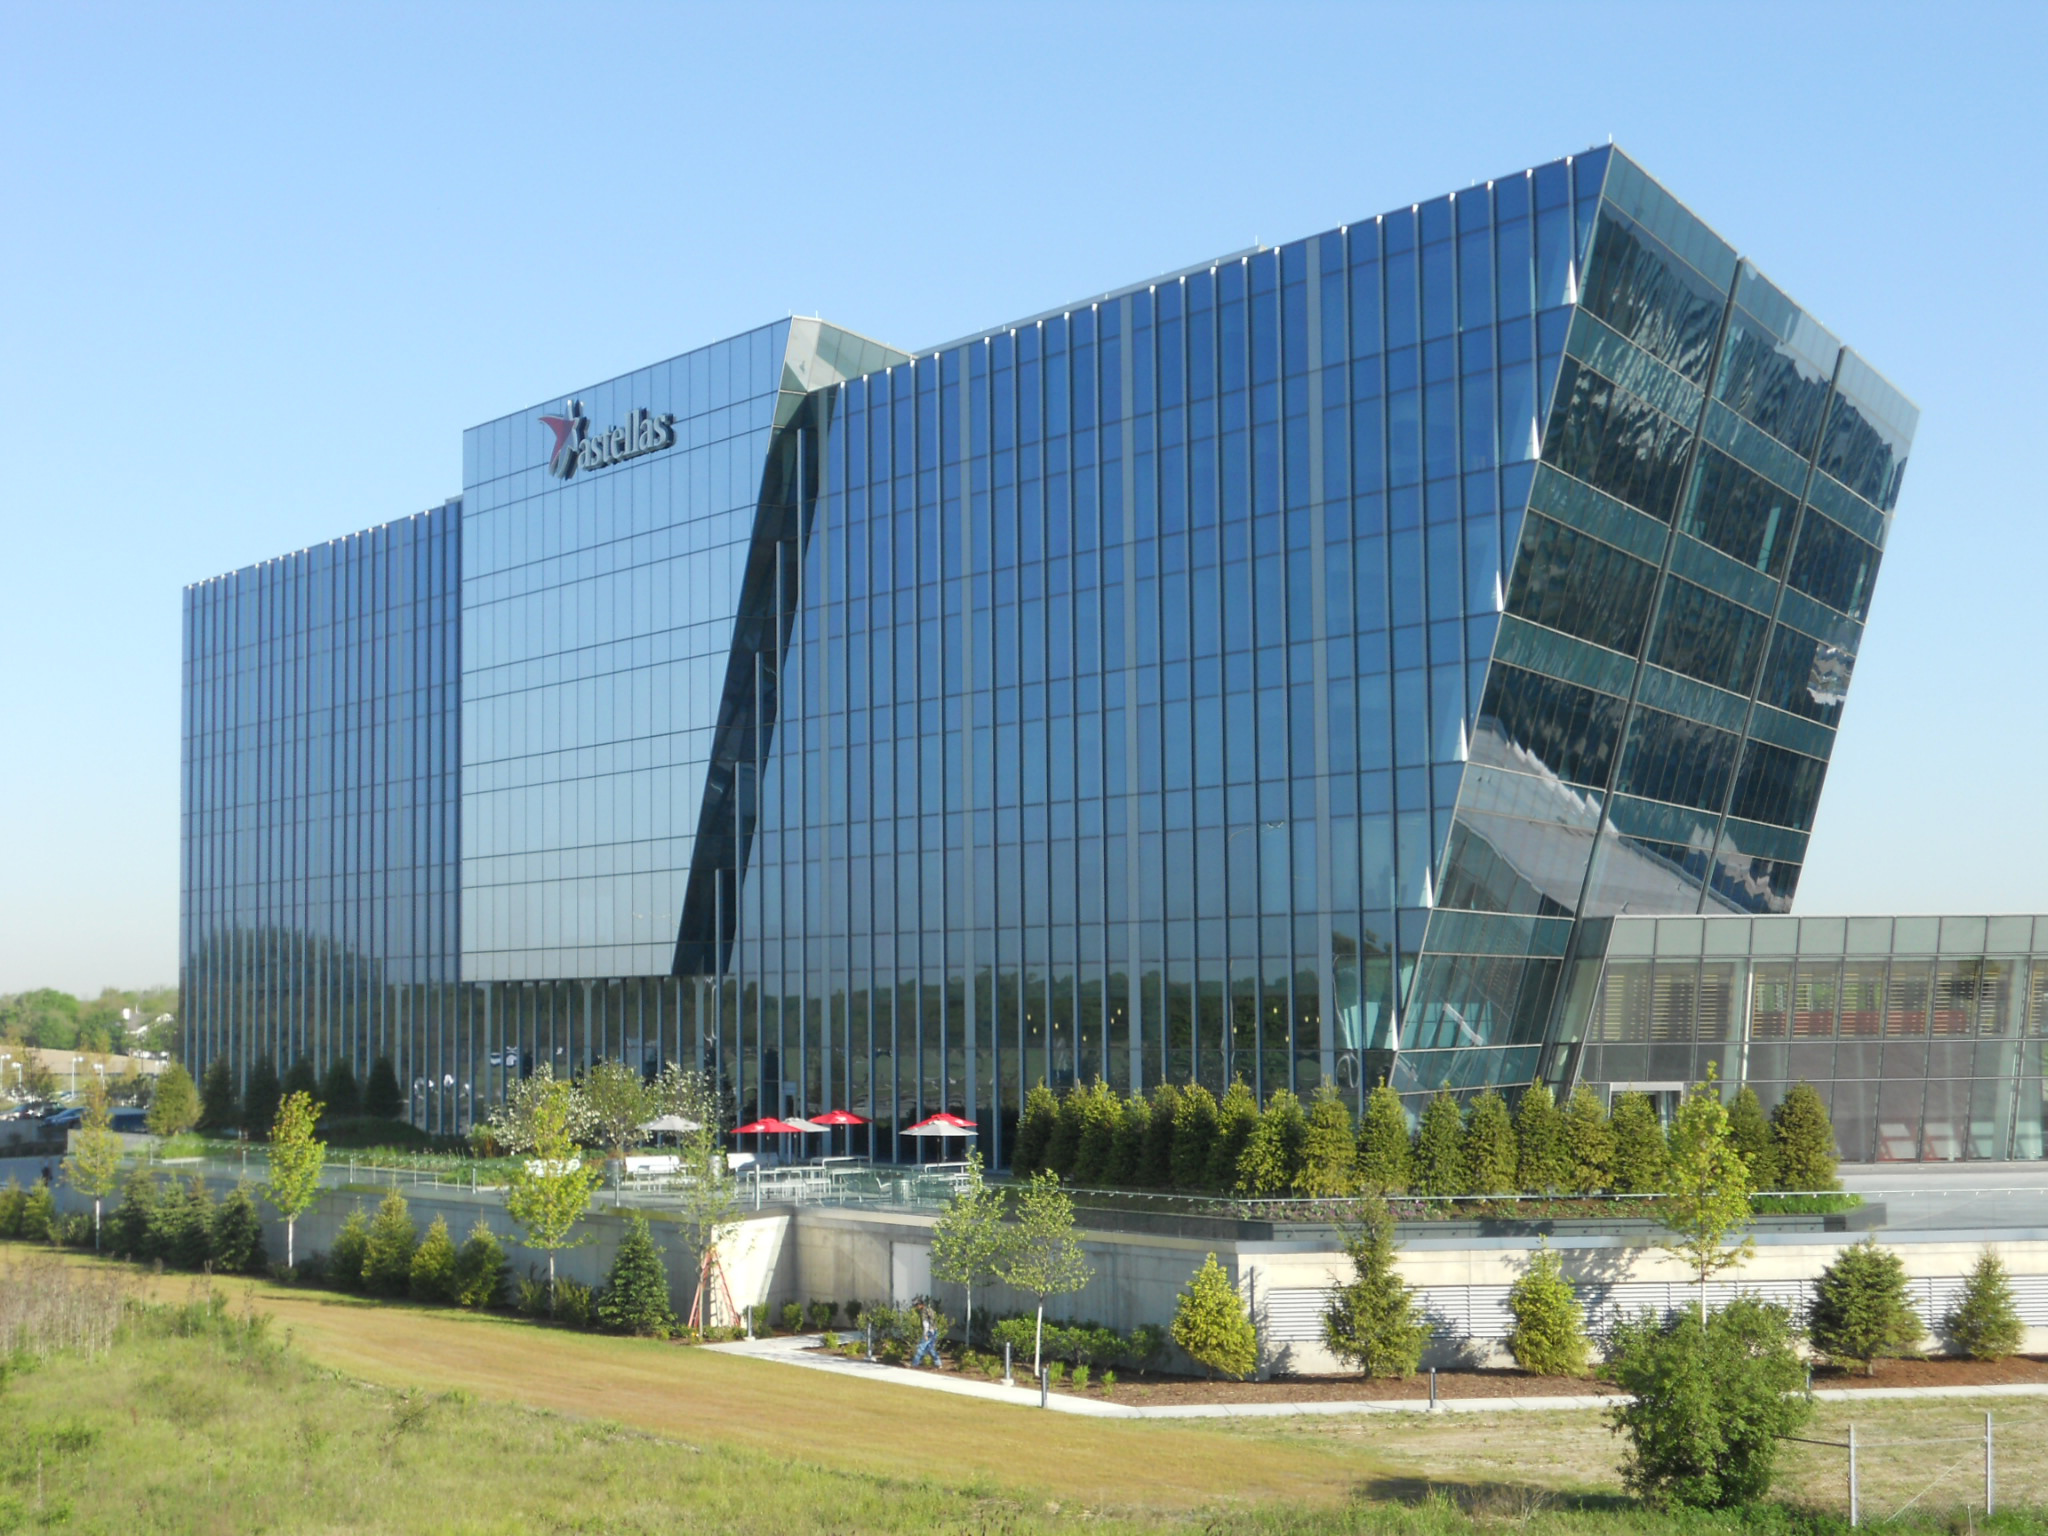 Astellas U.S. Headquarters